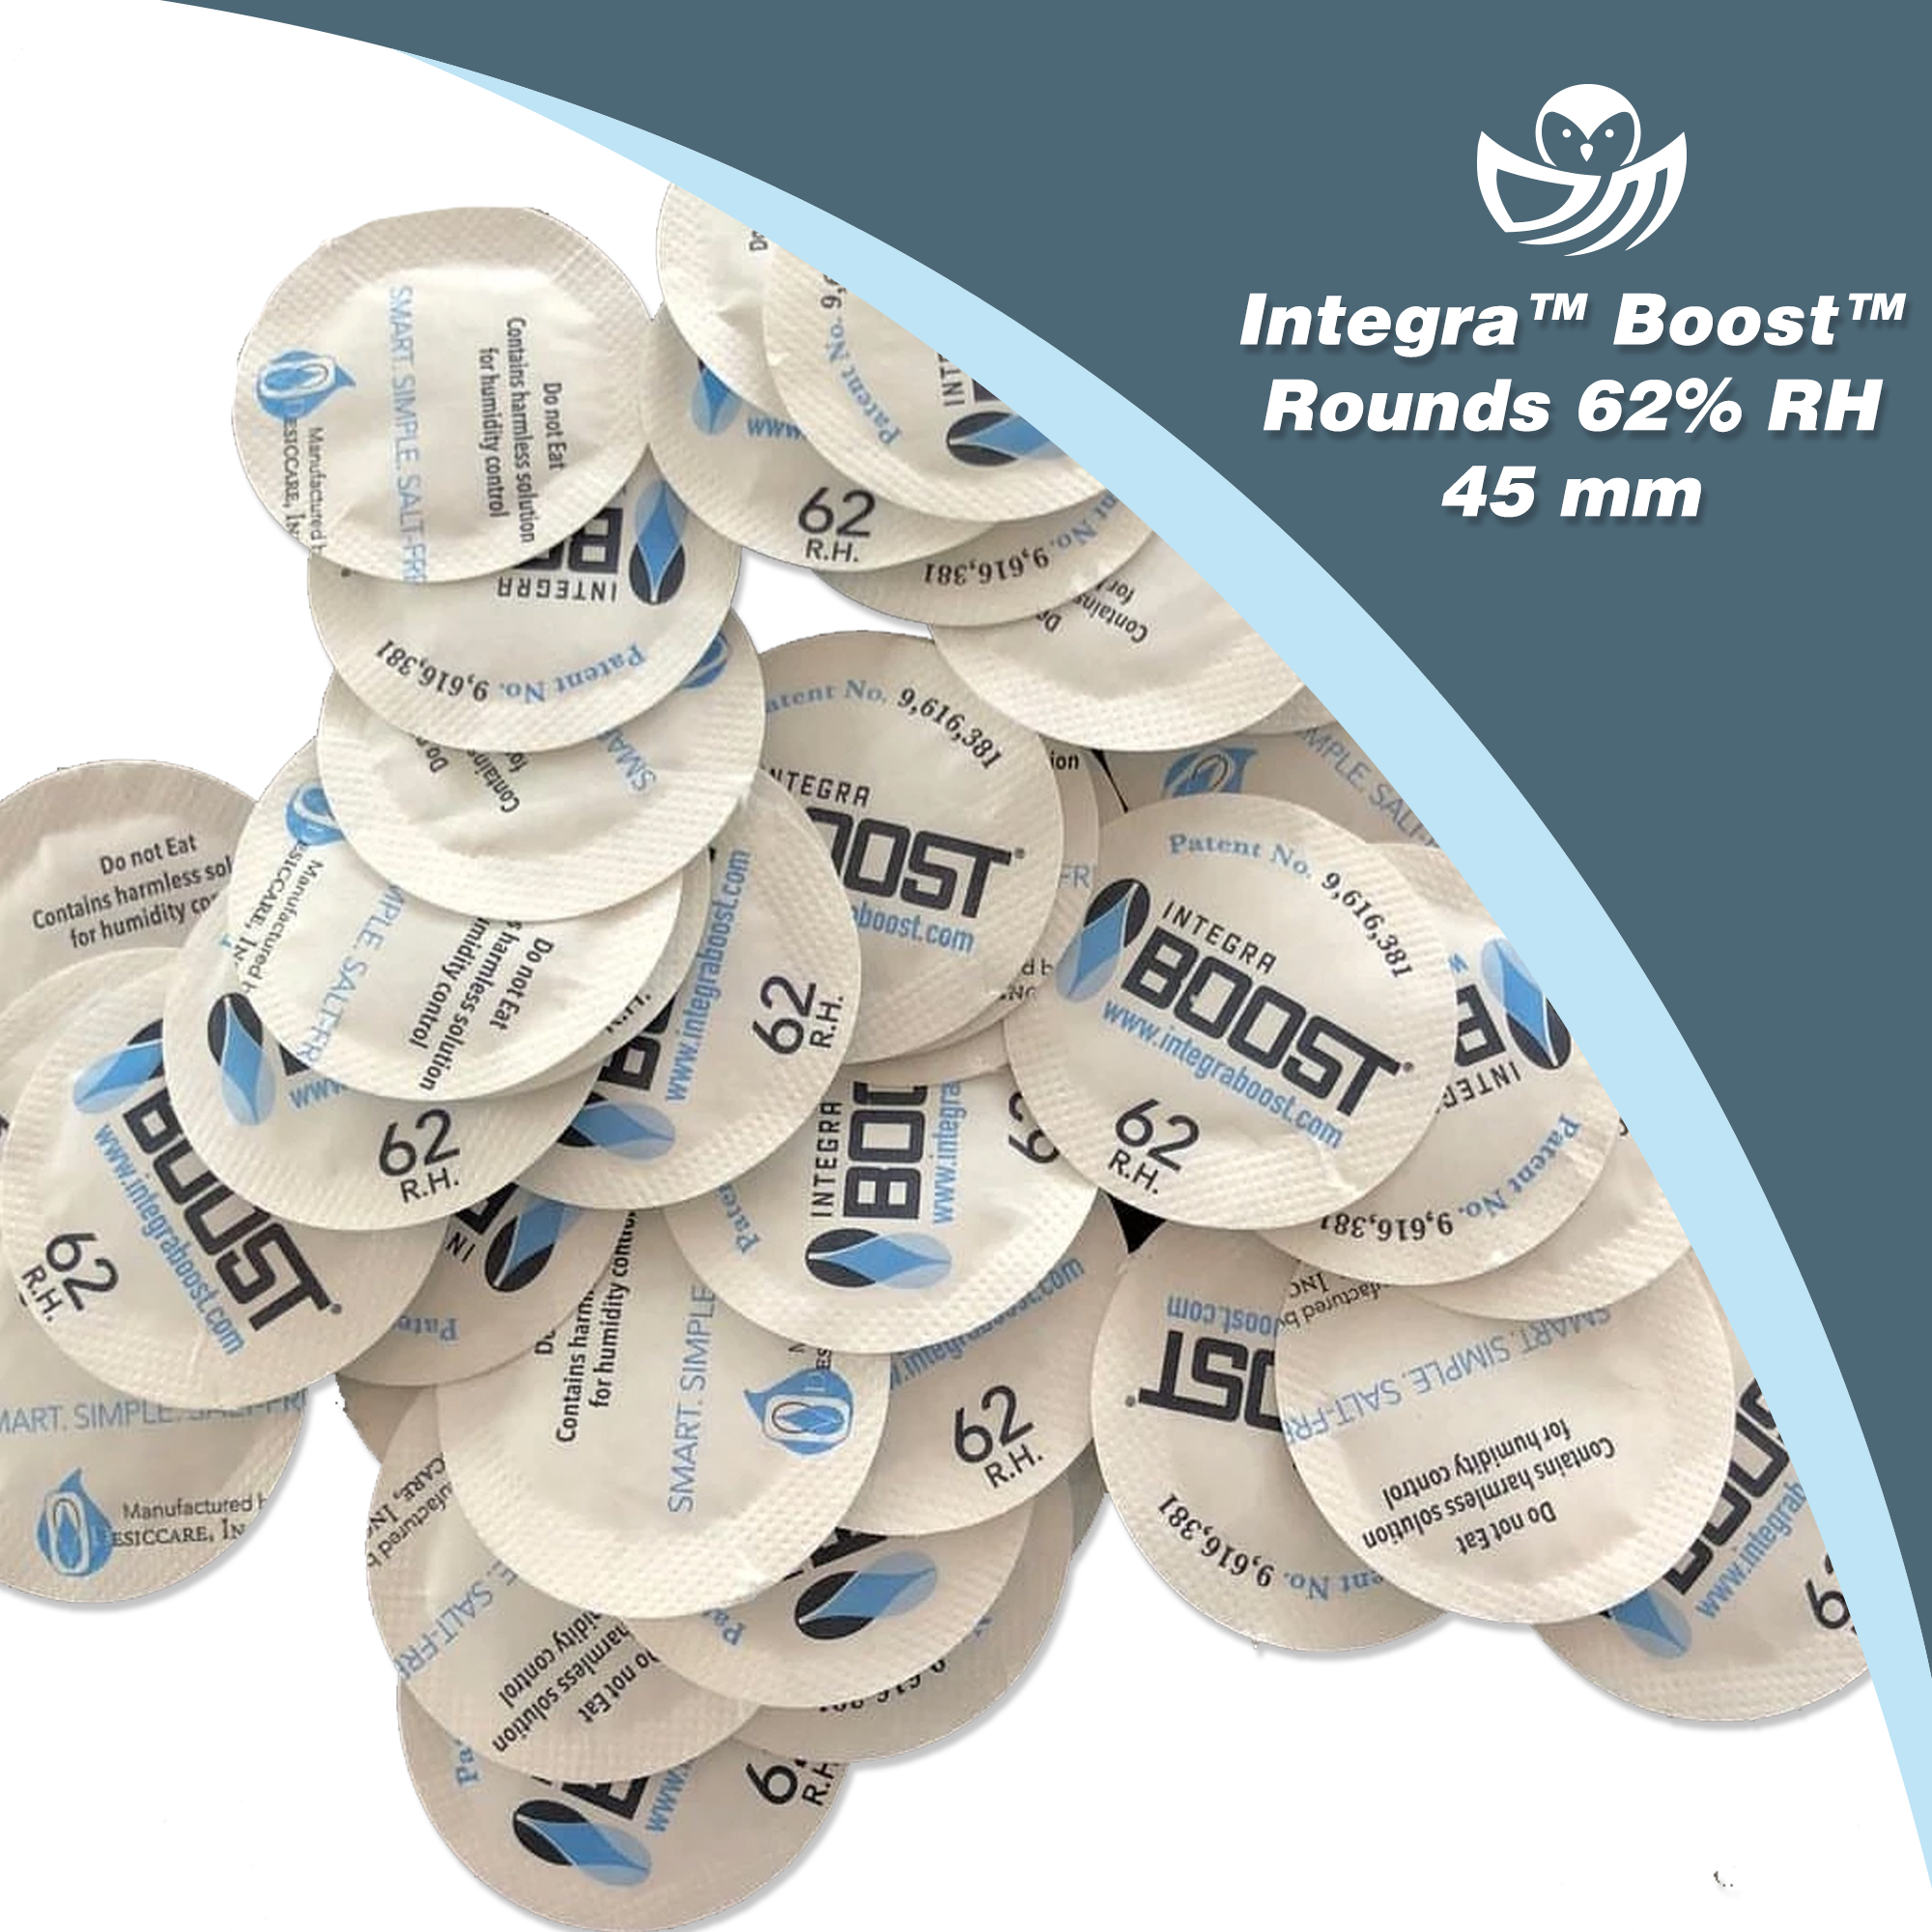 Integra Boost Round Packs 45mm, 62% R.H. - 3500 count